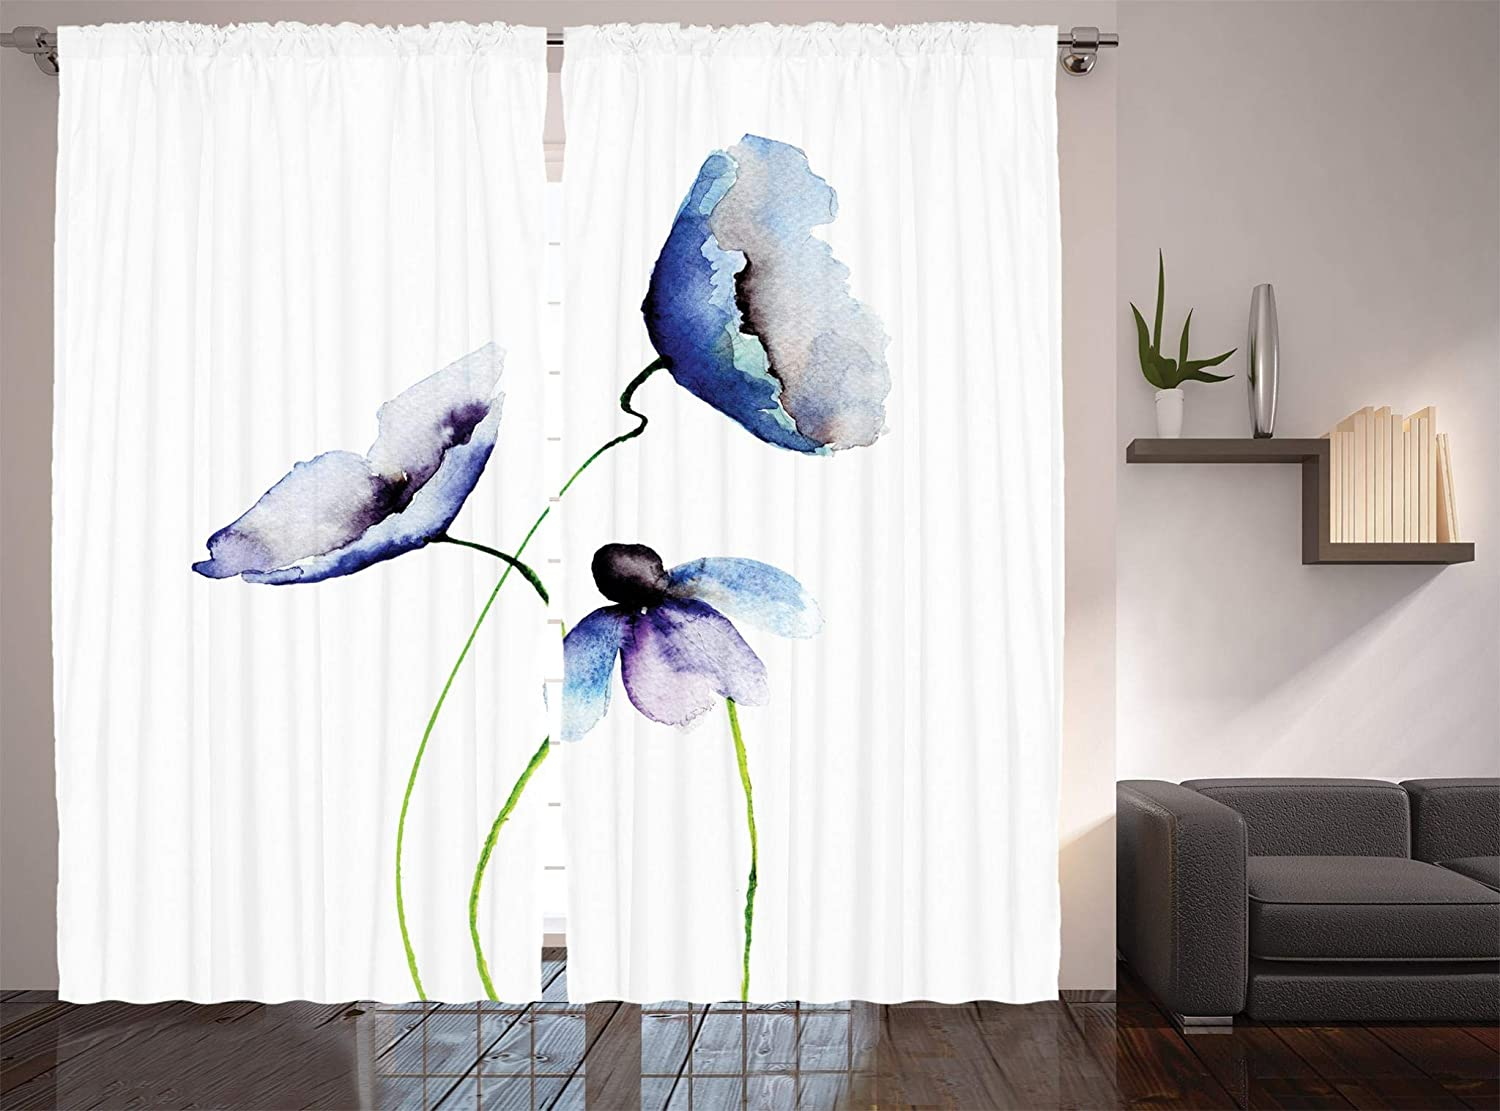 Ambesonne Watercolor Flower Decor Collection, Poppies Wildflowers Blooms in Watercolor Painting, Window Treatments, Living Room Bedroom Curtain 2 Panels Set, 108 X 90 Inches, Navy Blue White Green